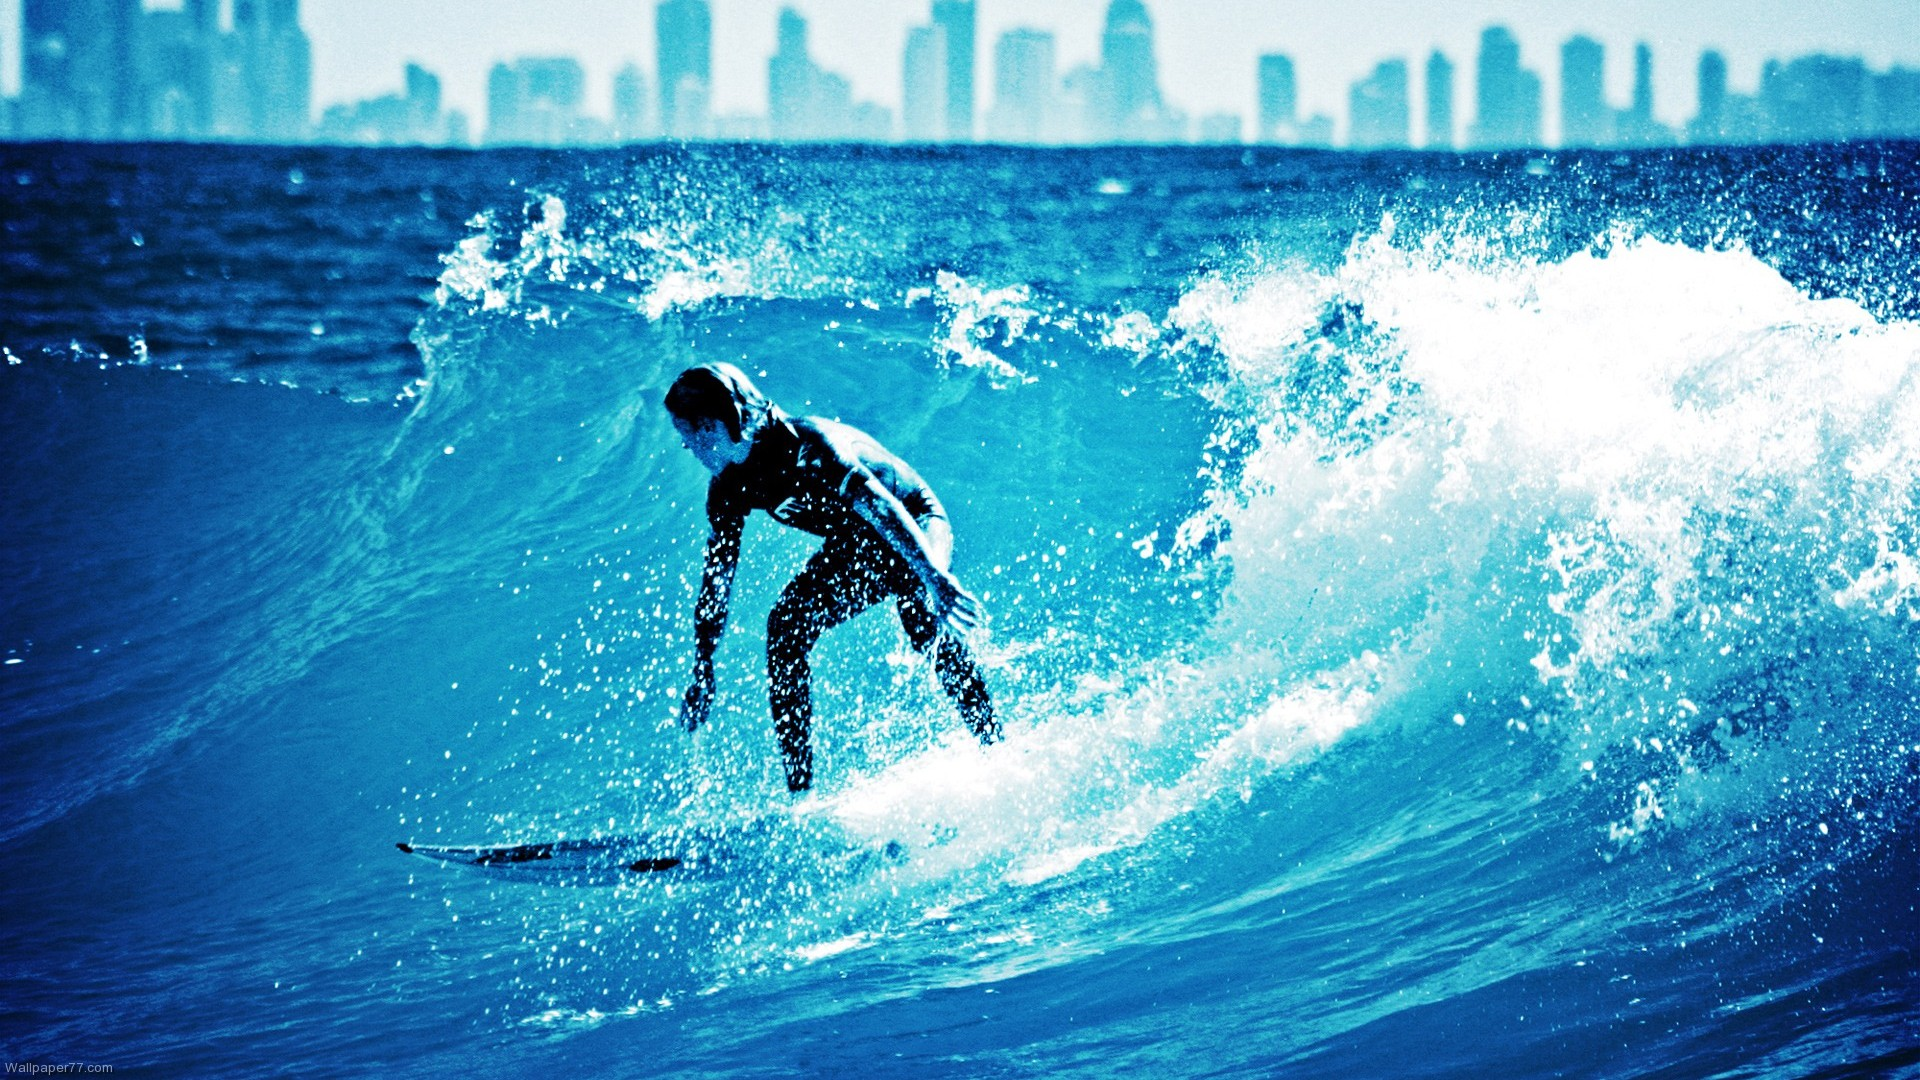 Surfing Desktop Wallpaper   Wallpaper High Definition High Quality 1920x1080